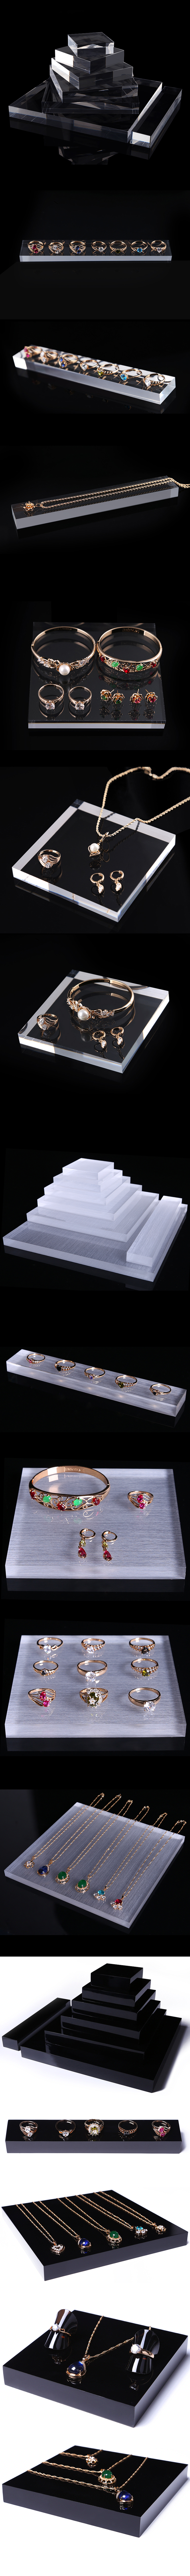 Clear Brushed Black Acrylic Jewelry Counter Display